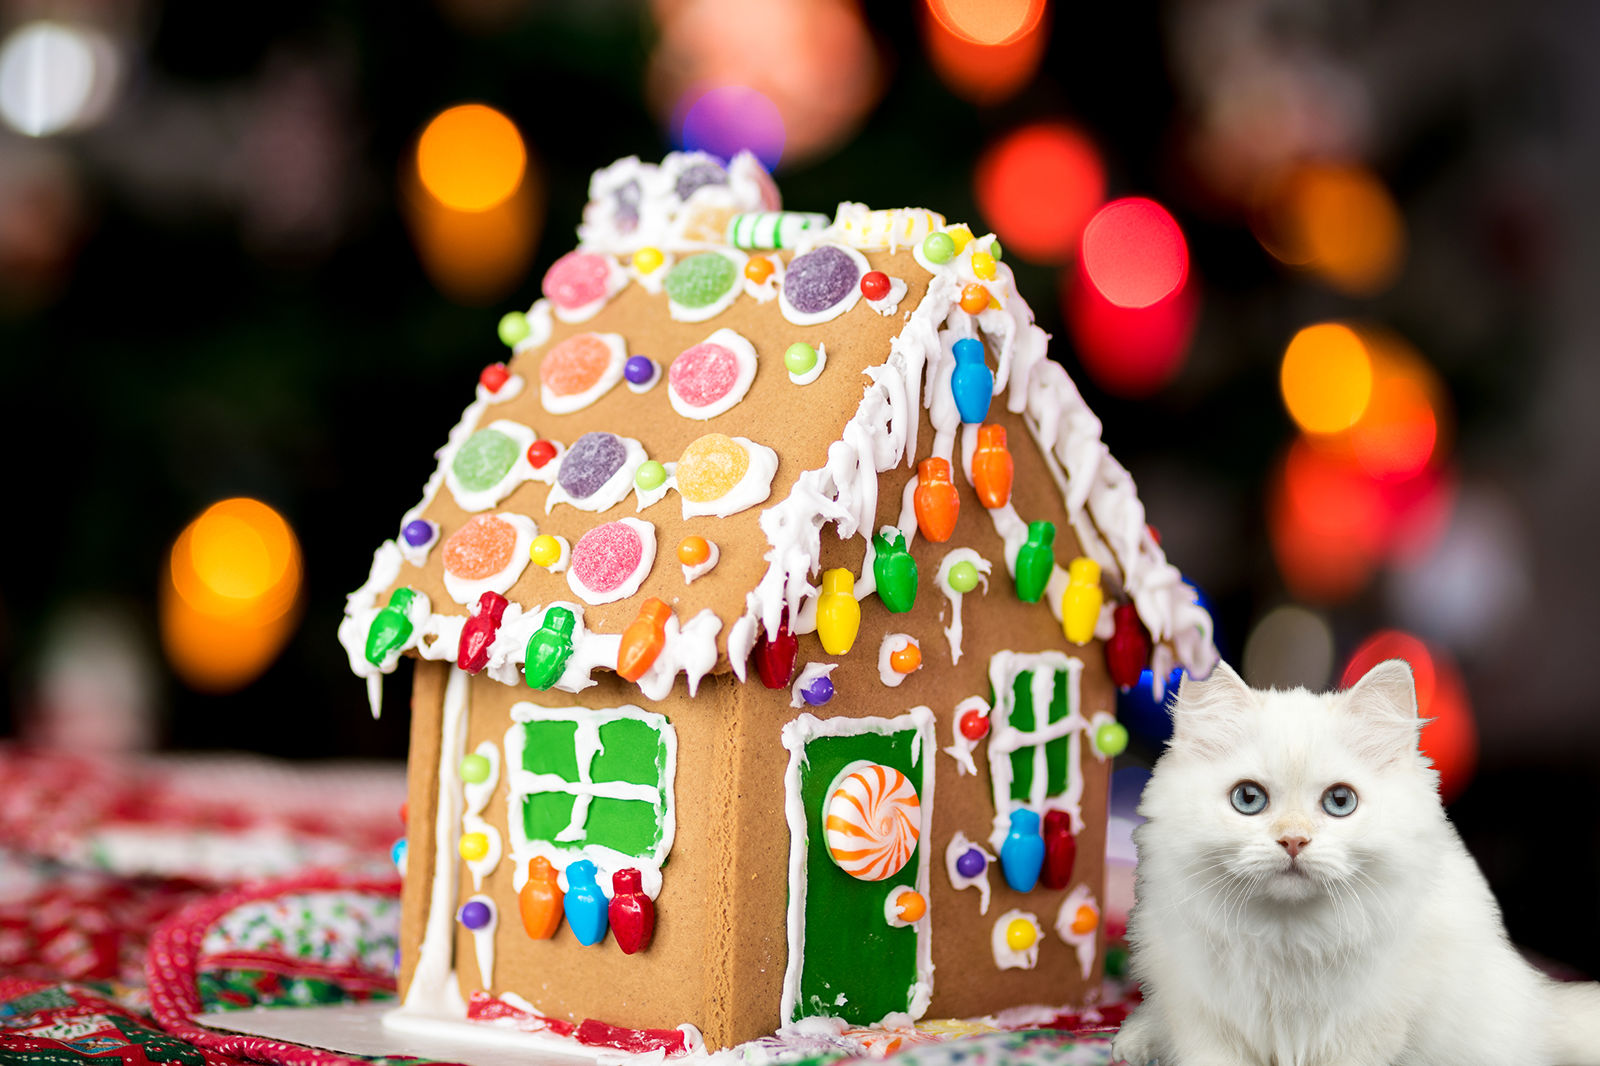 A Gingerbread House for Cats Is the Holiday DIY Project That'll Make Your Dog Jealous